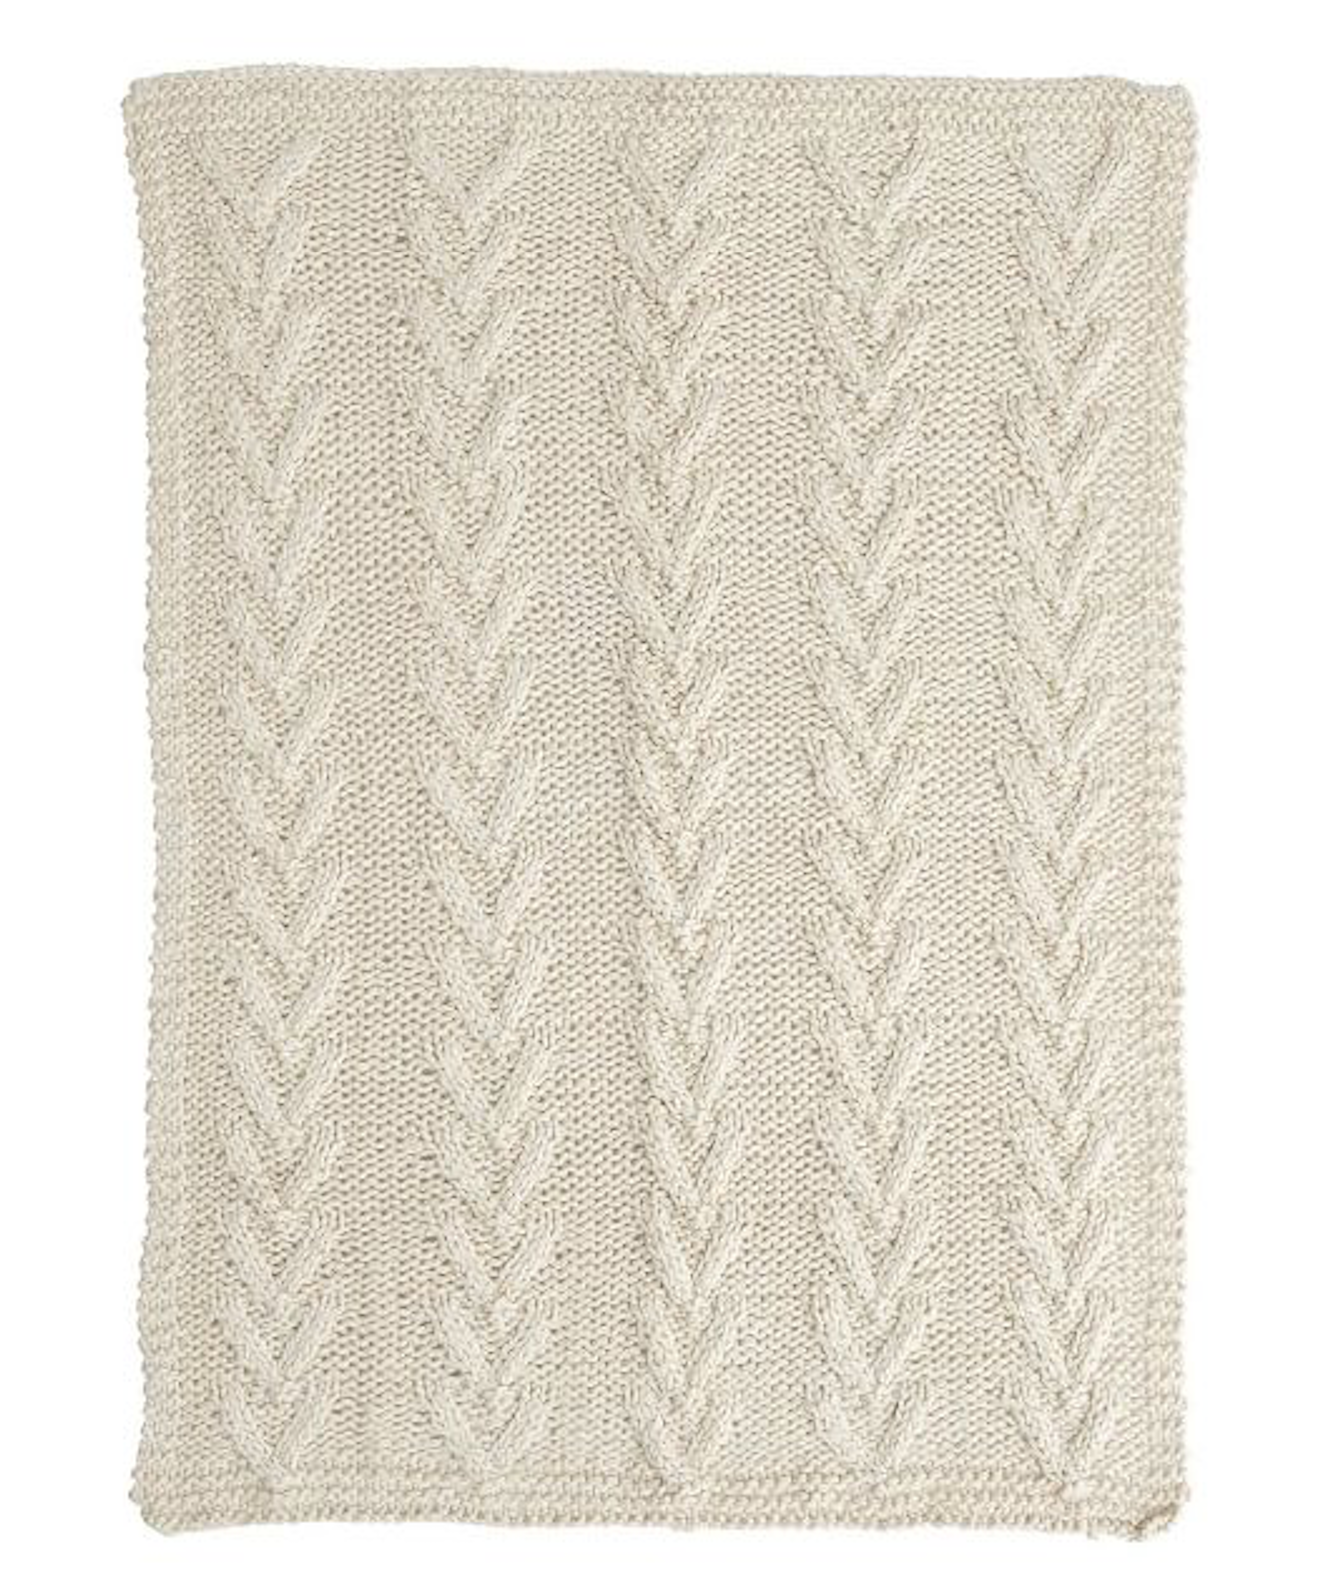 Cream Hand knit Throw